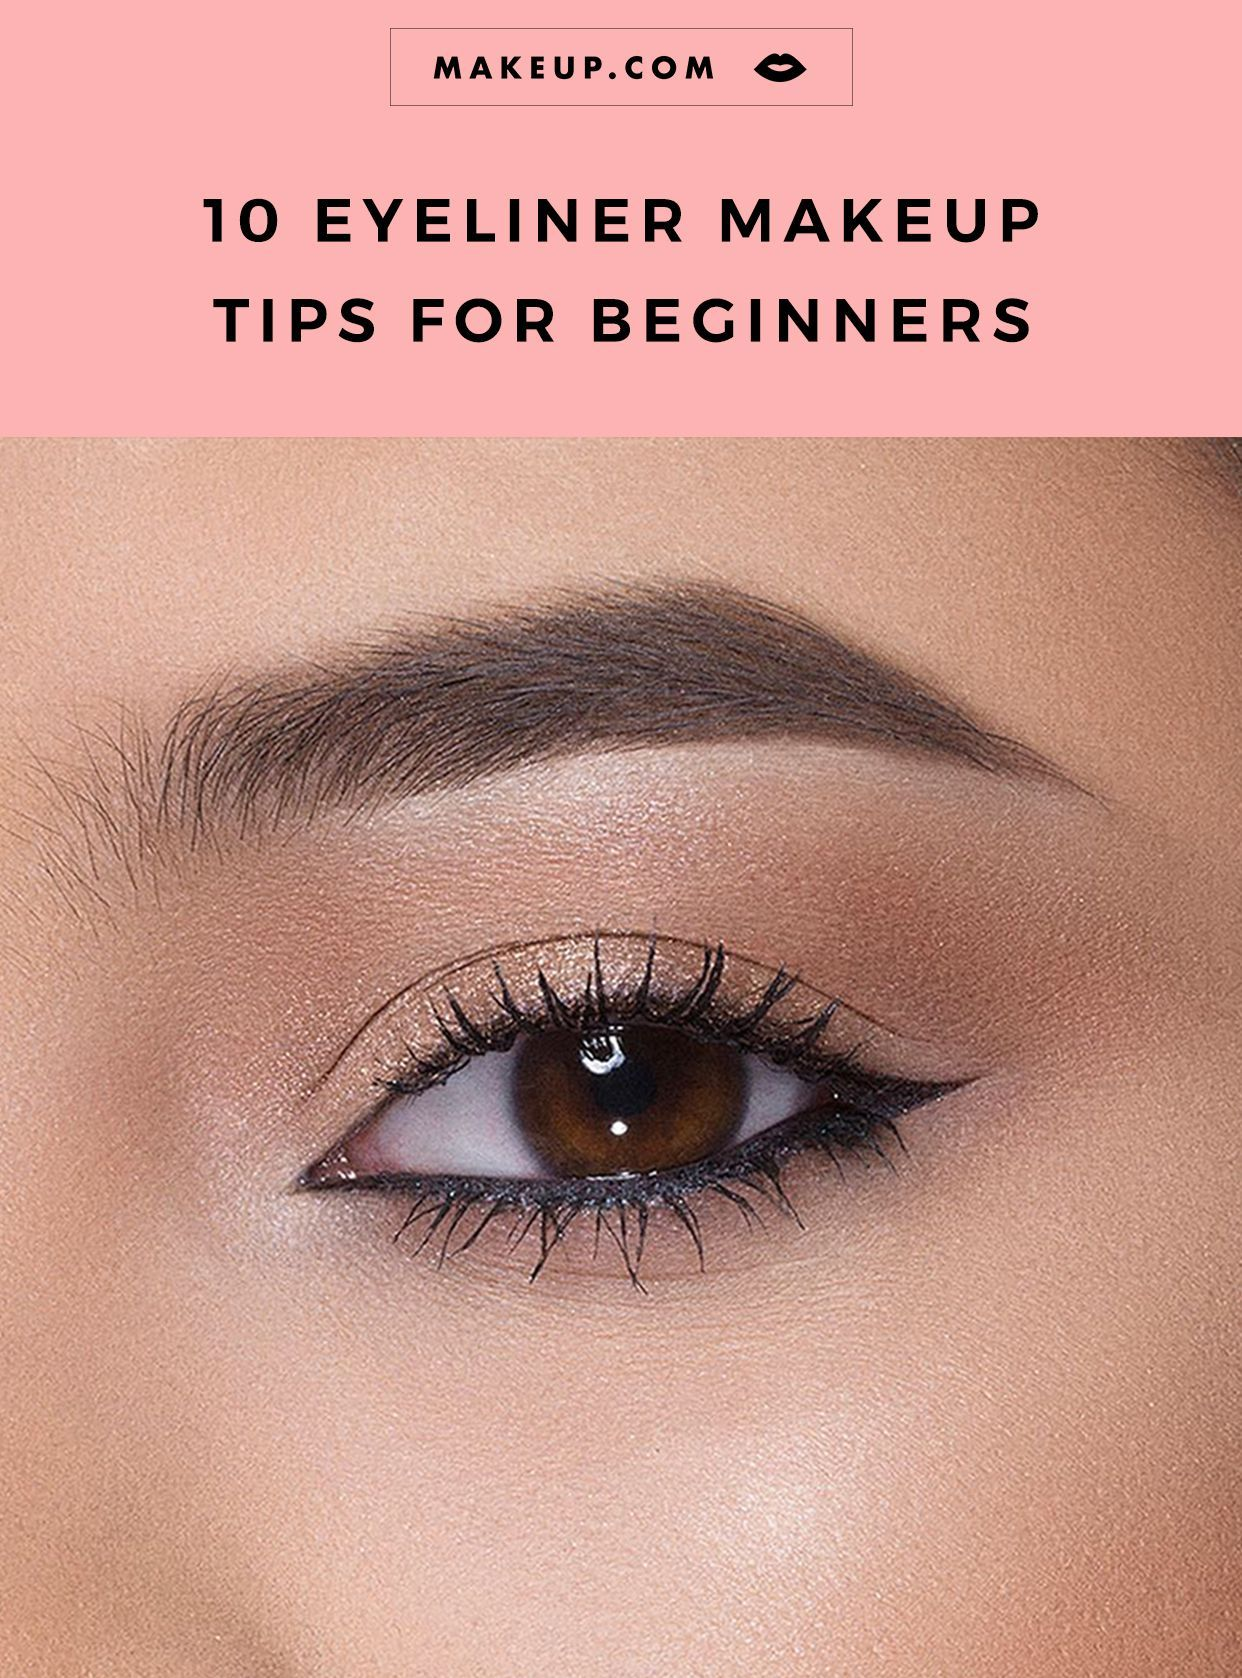 These eyeliner and will make lining your eyes a breeze — even if you know nothing about